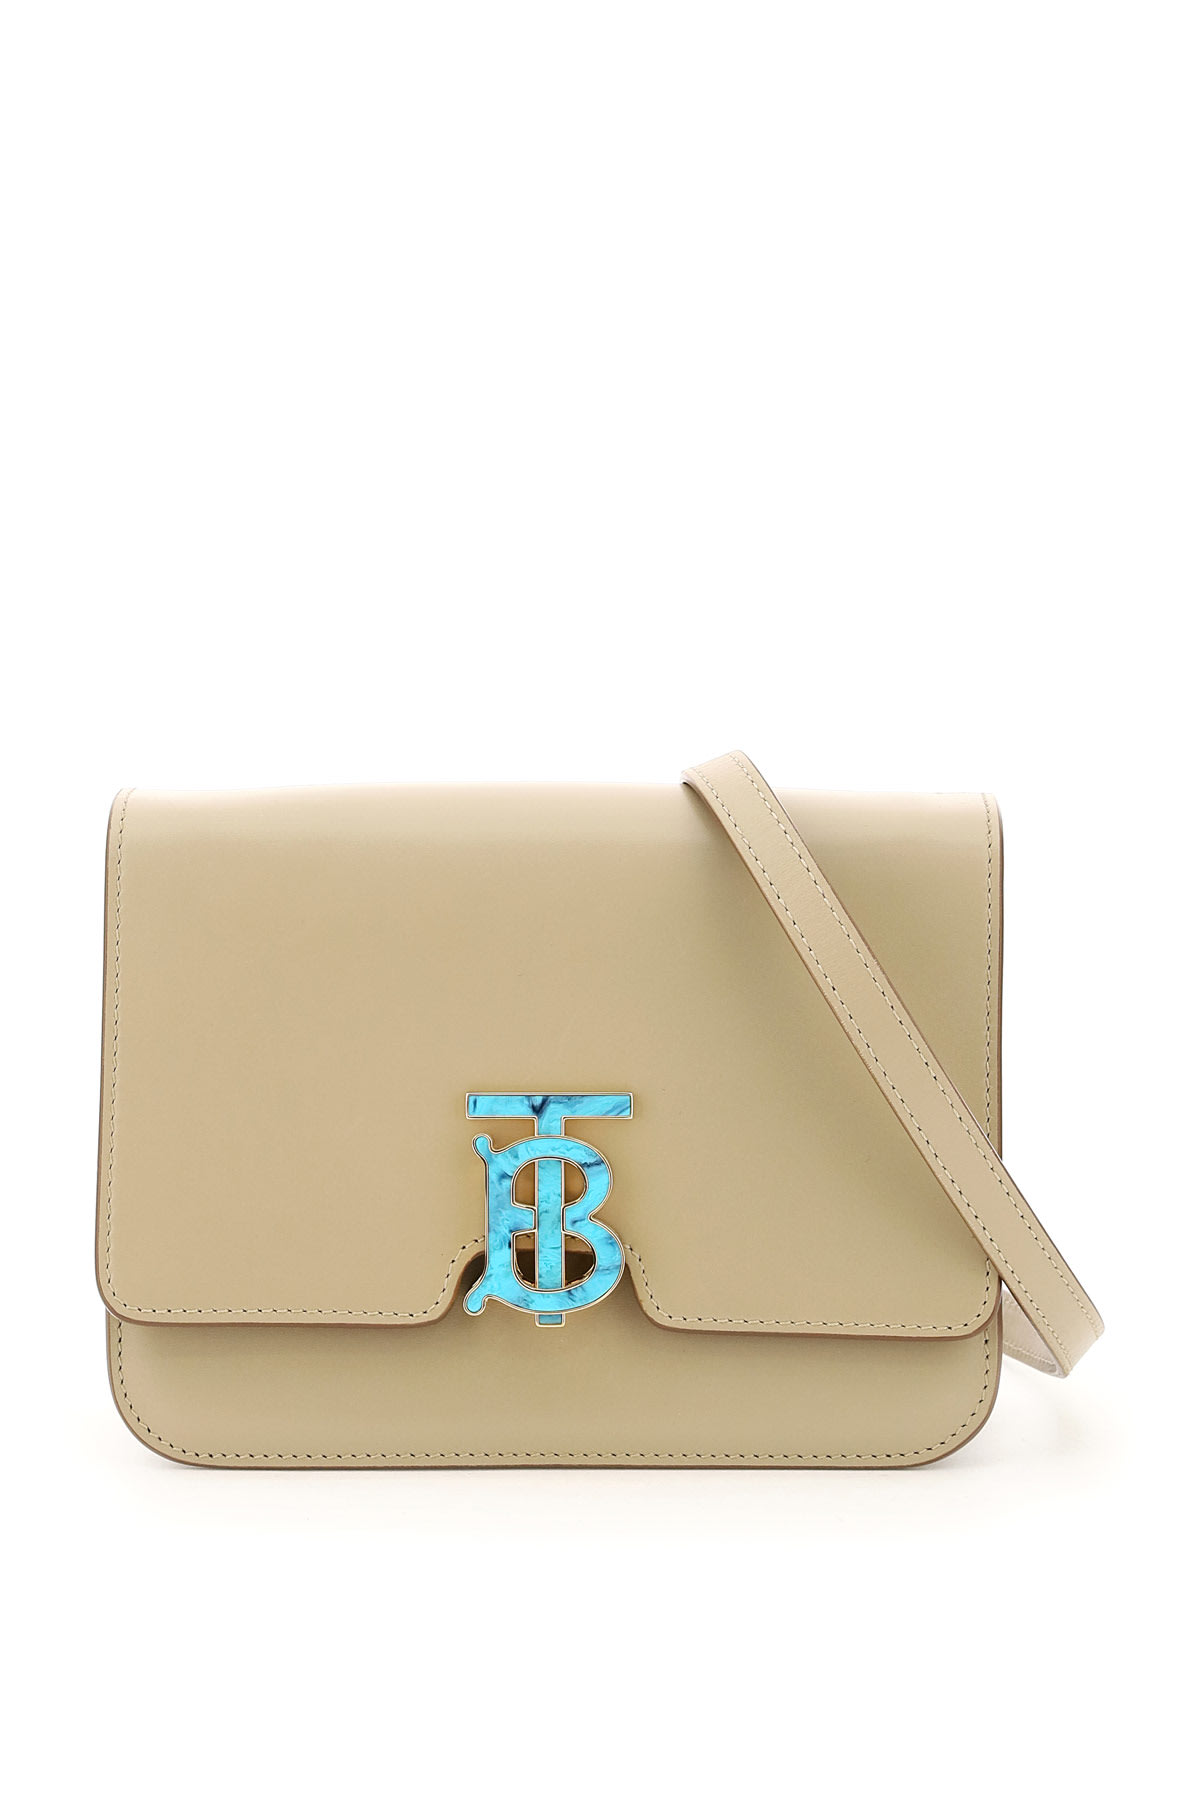 BURBERRY CROSSBODY TB SMALL BAG